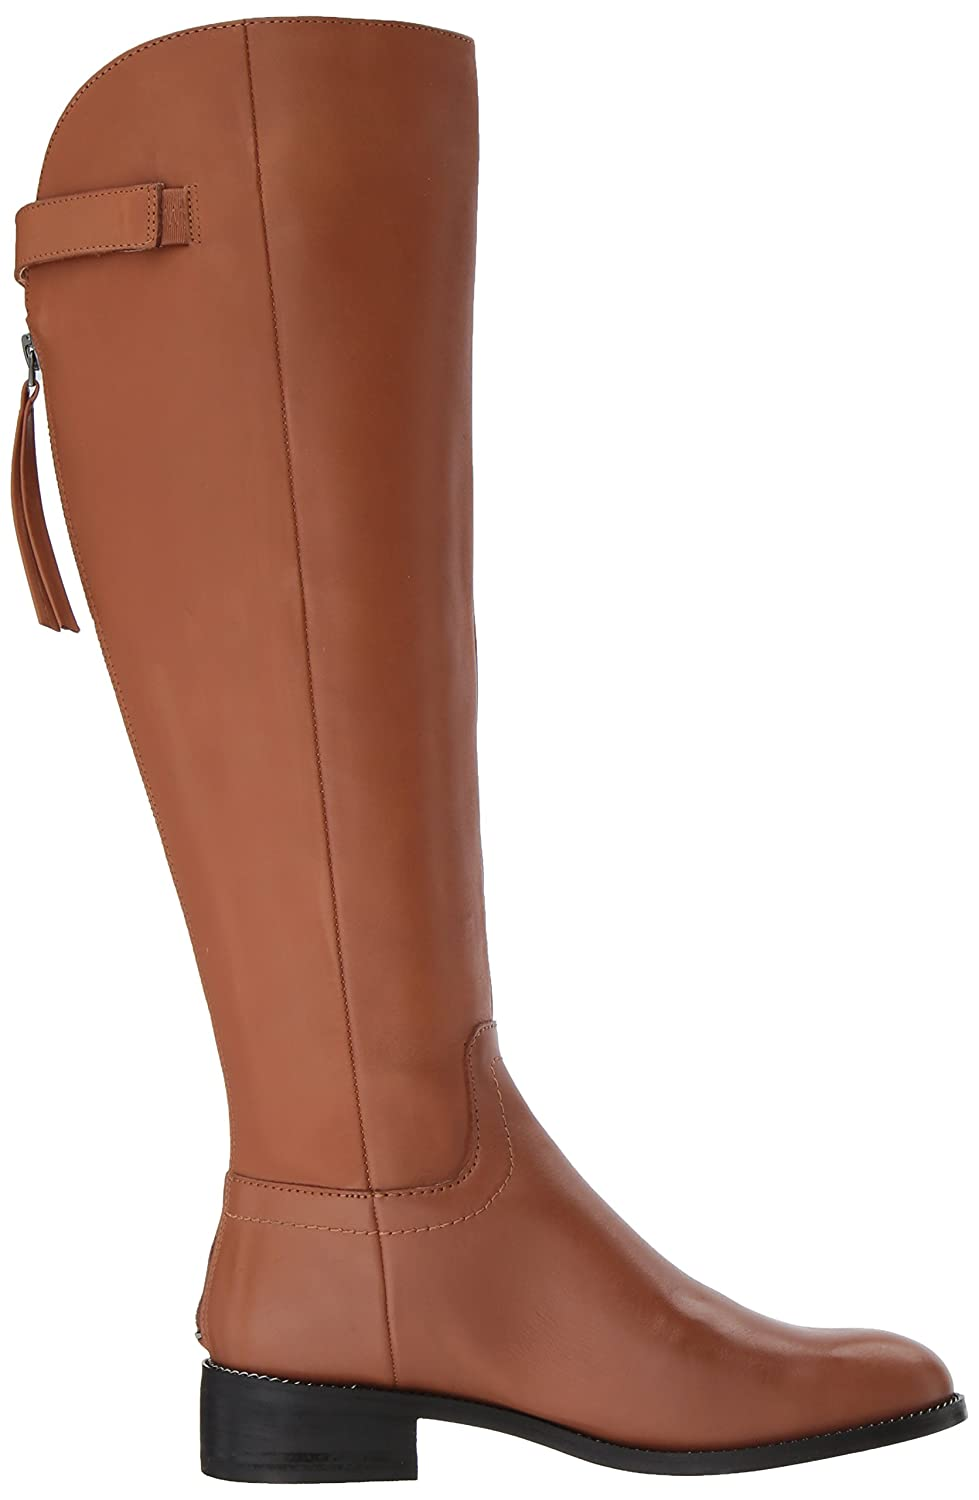 Franco Sarto Women's Brindley Knee High US|Whiskey Boot B073H3SB8L 10 W US|Whiskey High 27dadb